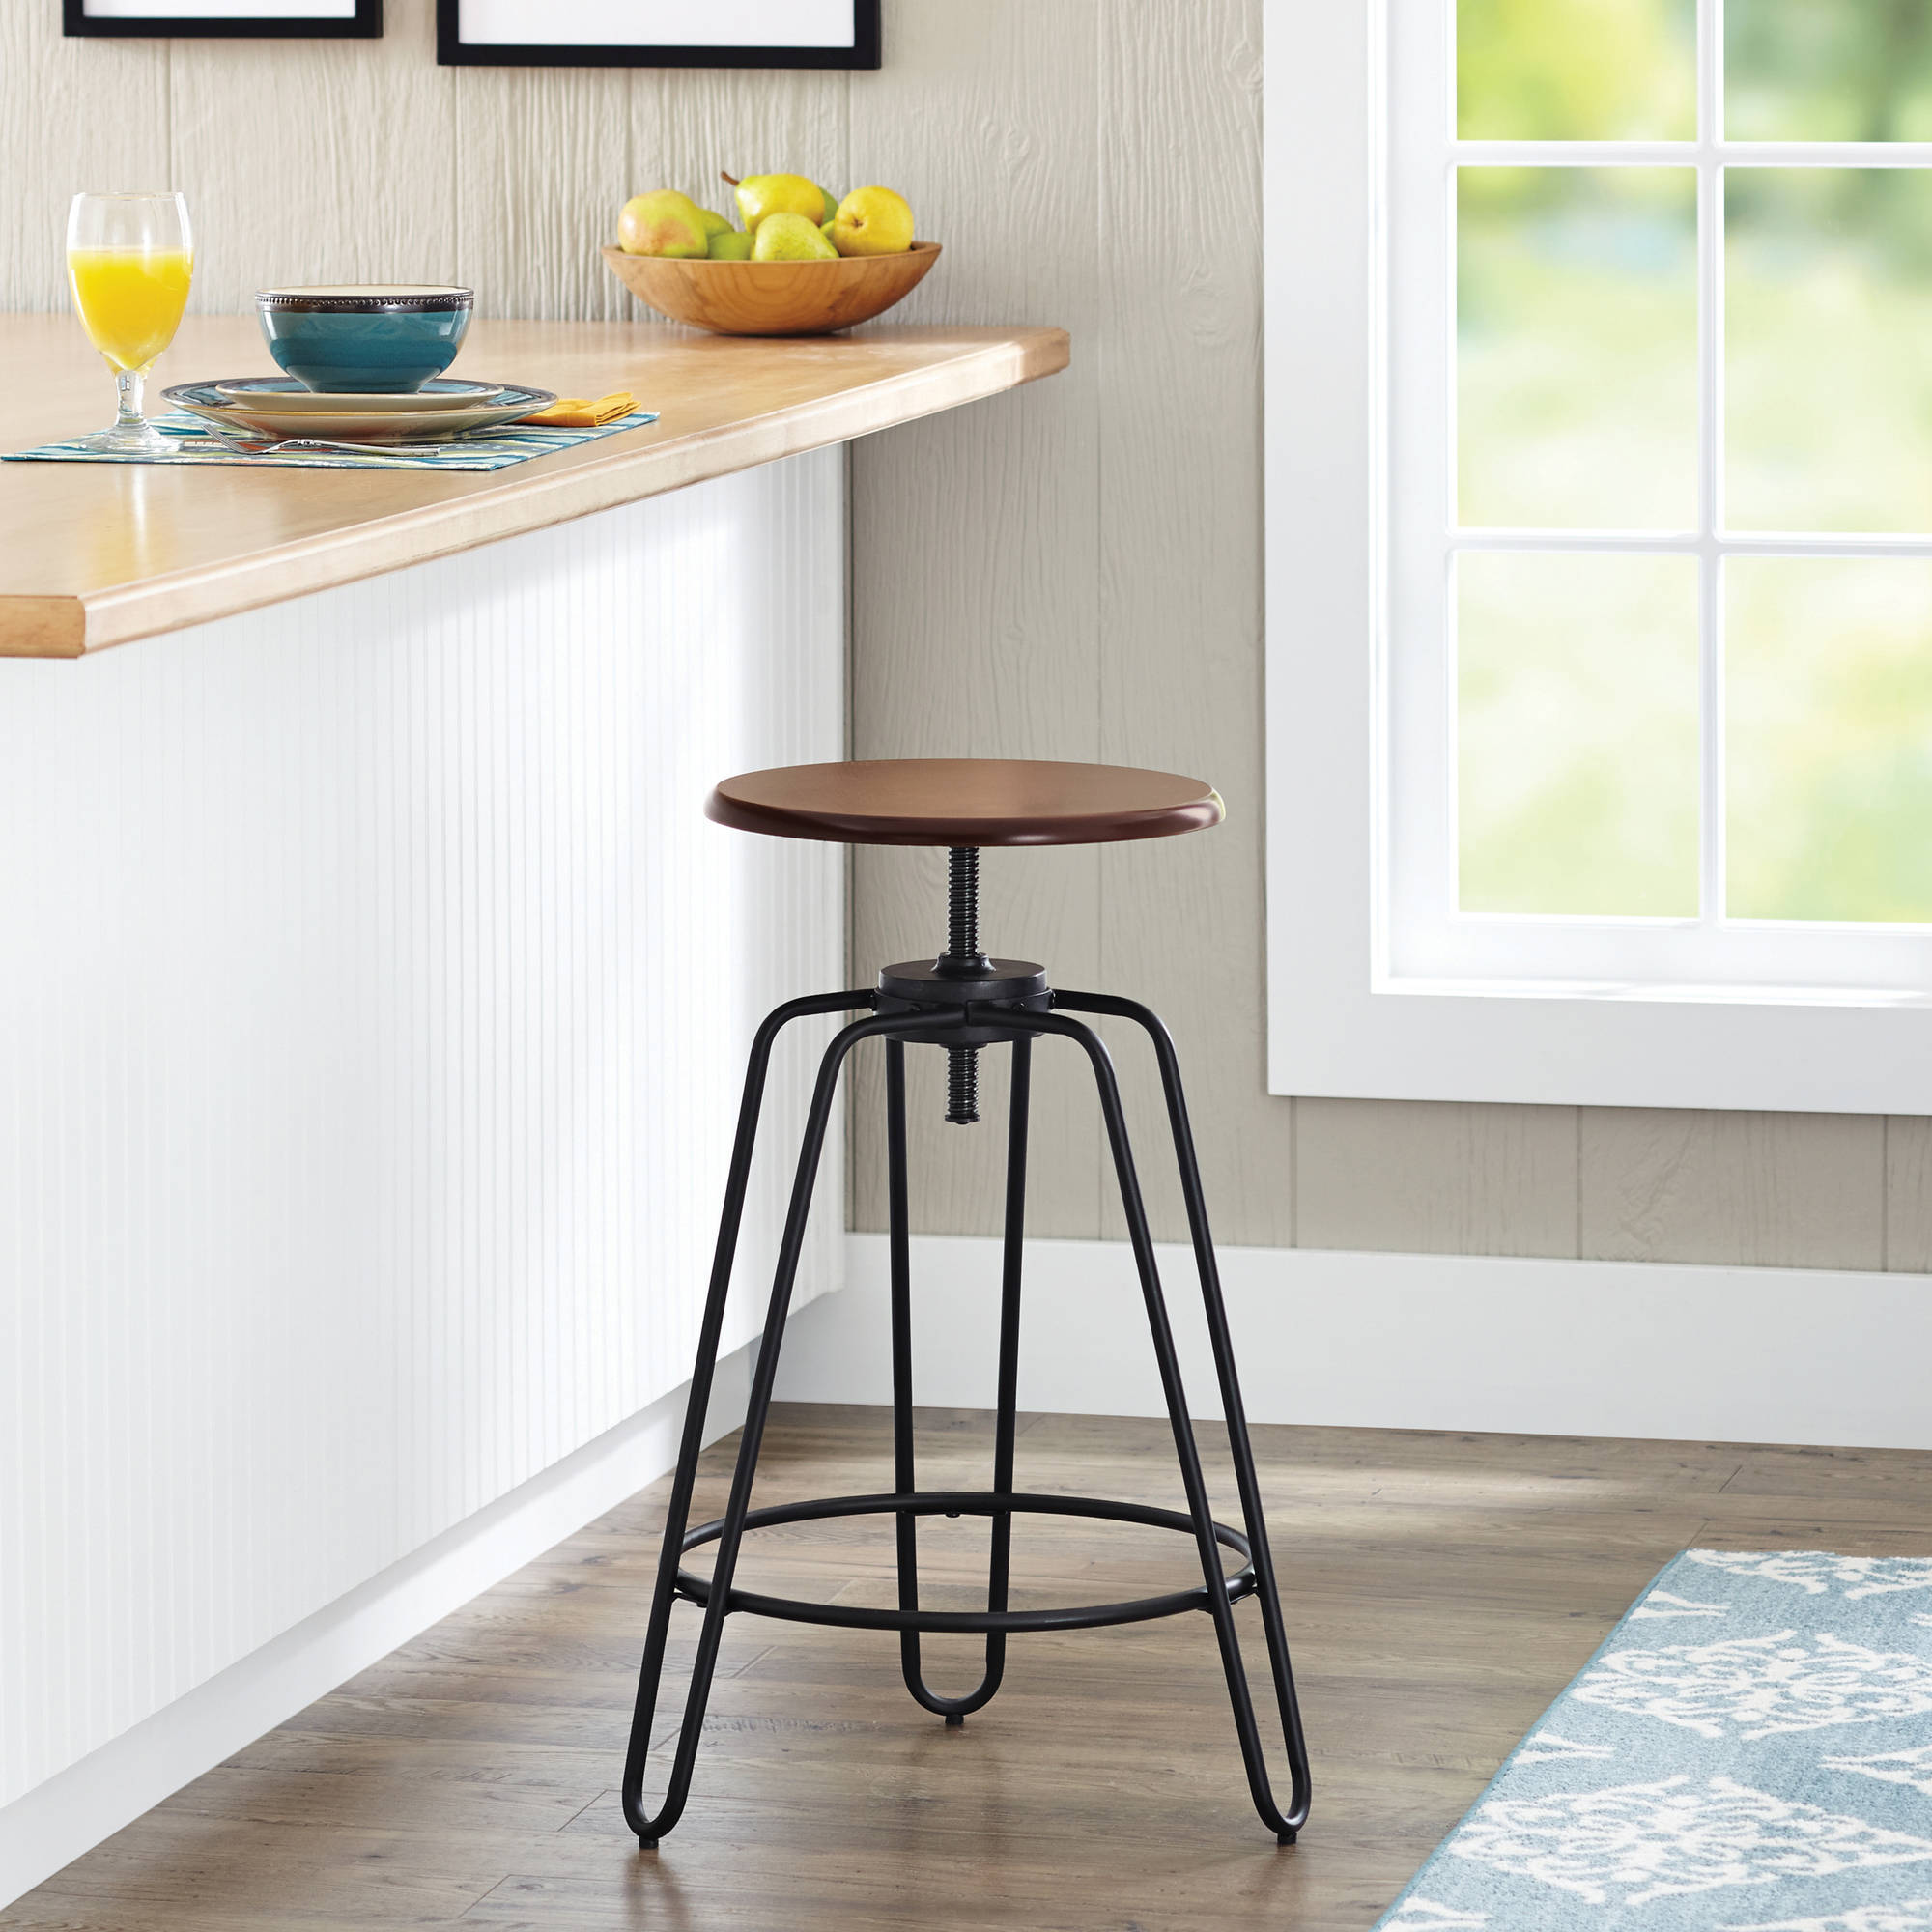 Better homes gardens adjustable height spin stool walmart workwithnaturefo